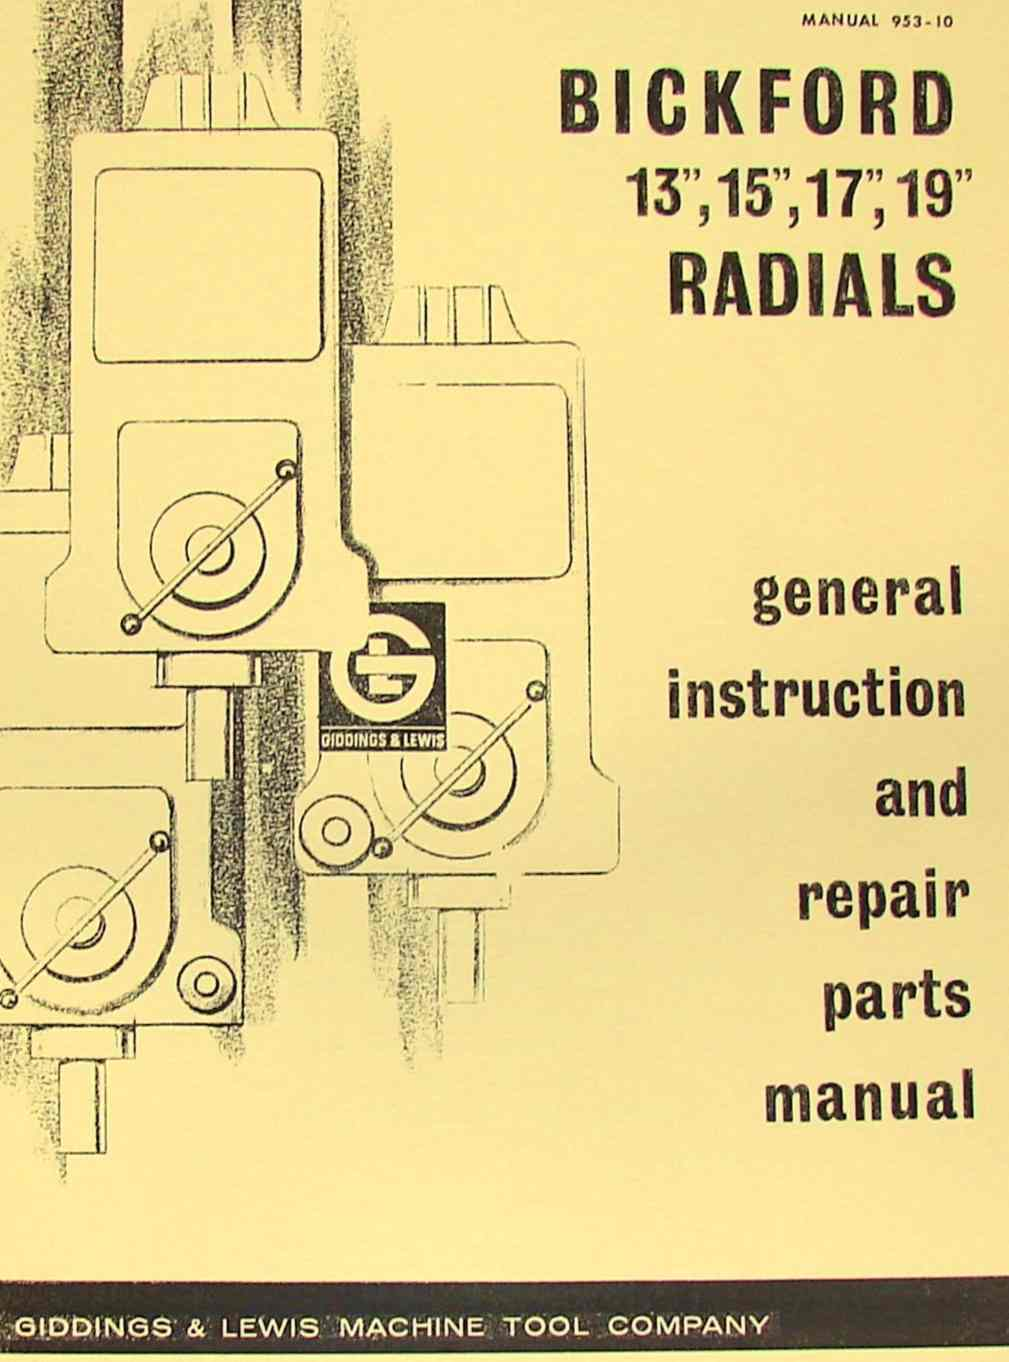 GIDDING & LEWIS Bickford Radial Drill Operator's & Parts Manual   Ozark  Tool Manuals & Books